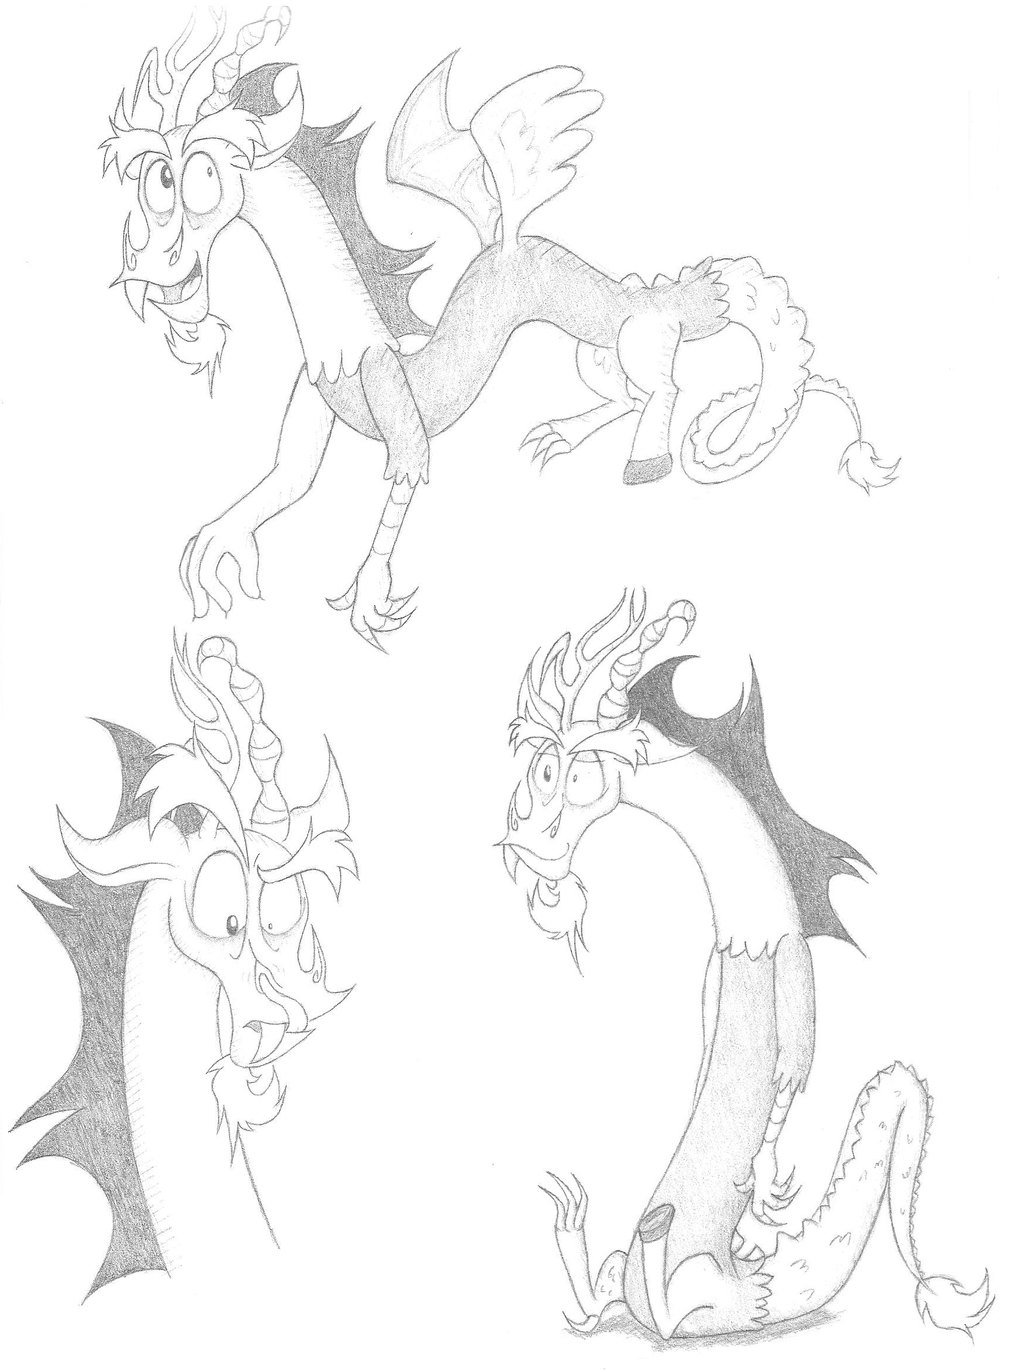 Discord Doodles 2 by Smashedatoms